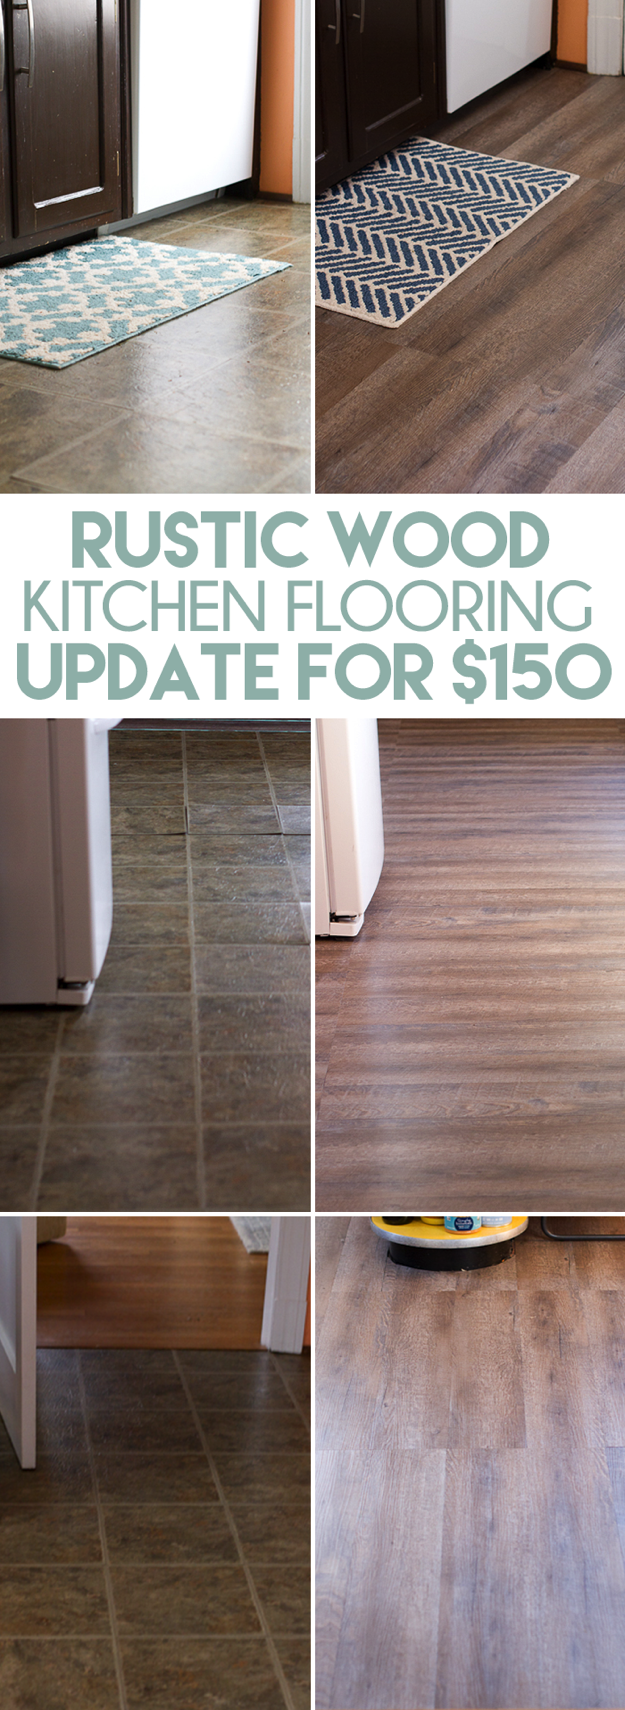 cheap diy kitchen flooring ideas